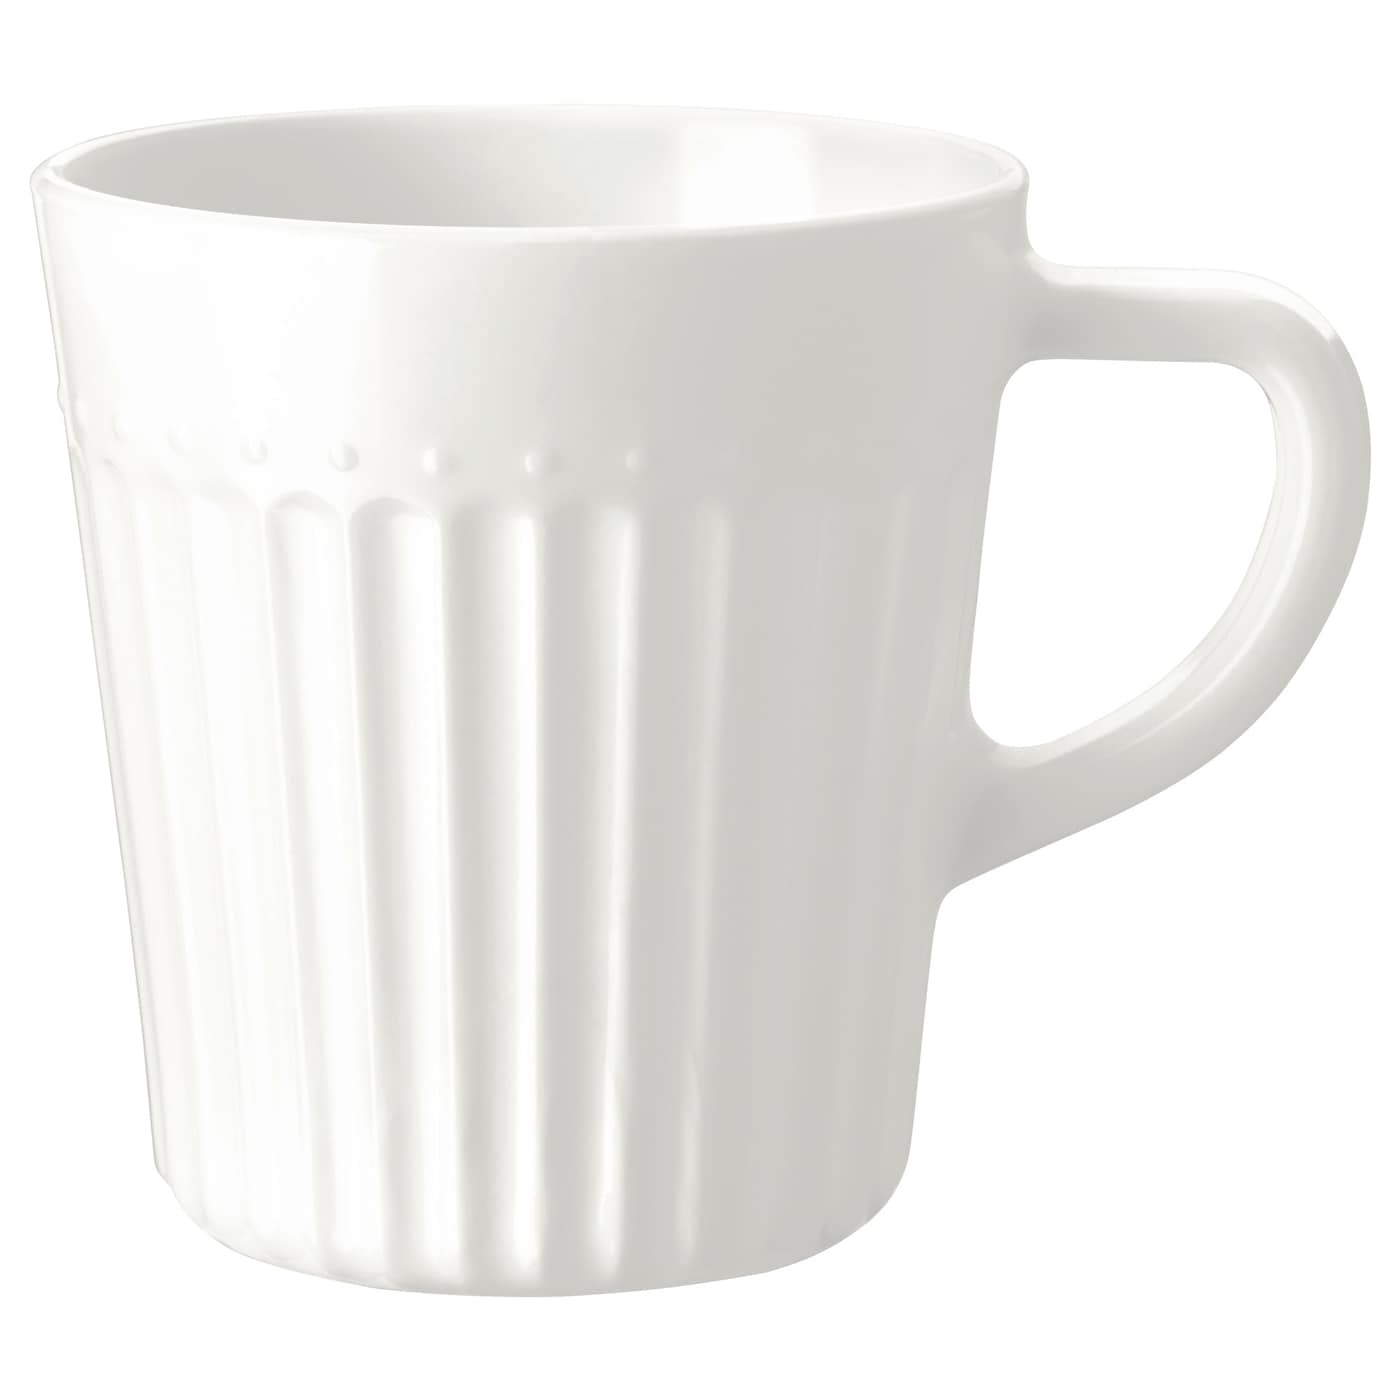 IKEA SANNING mug Made of tempered glass, which makes the mug durable and extra resistant to impact.